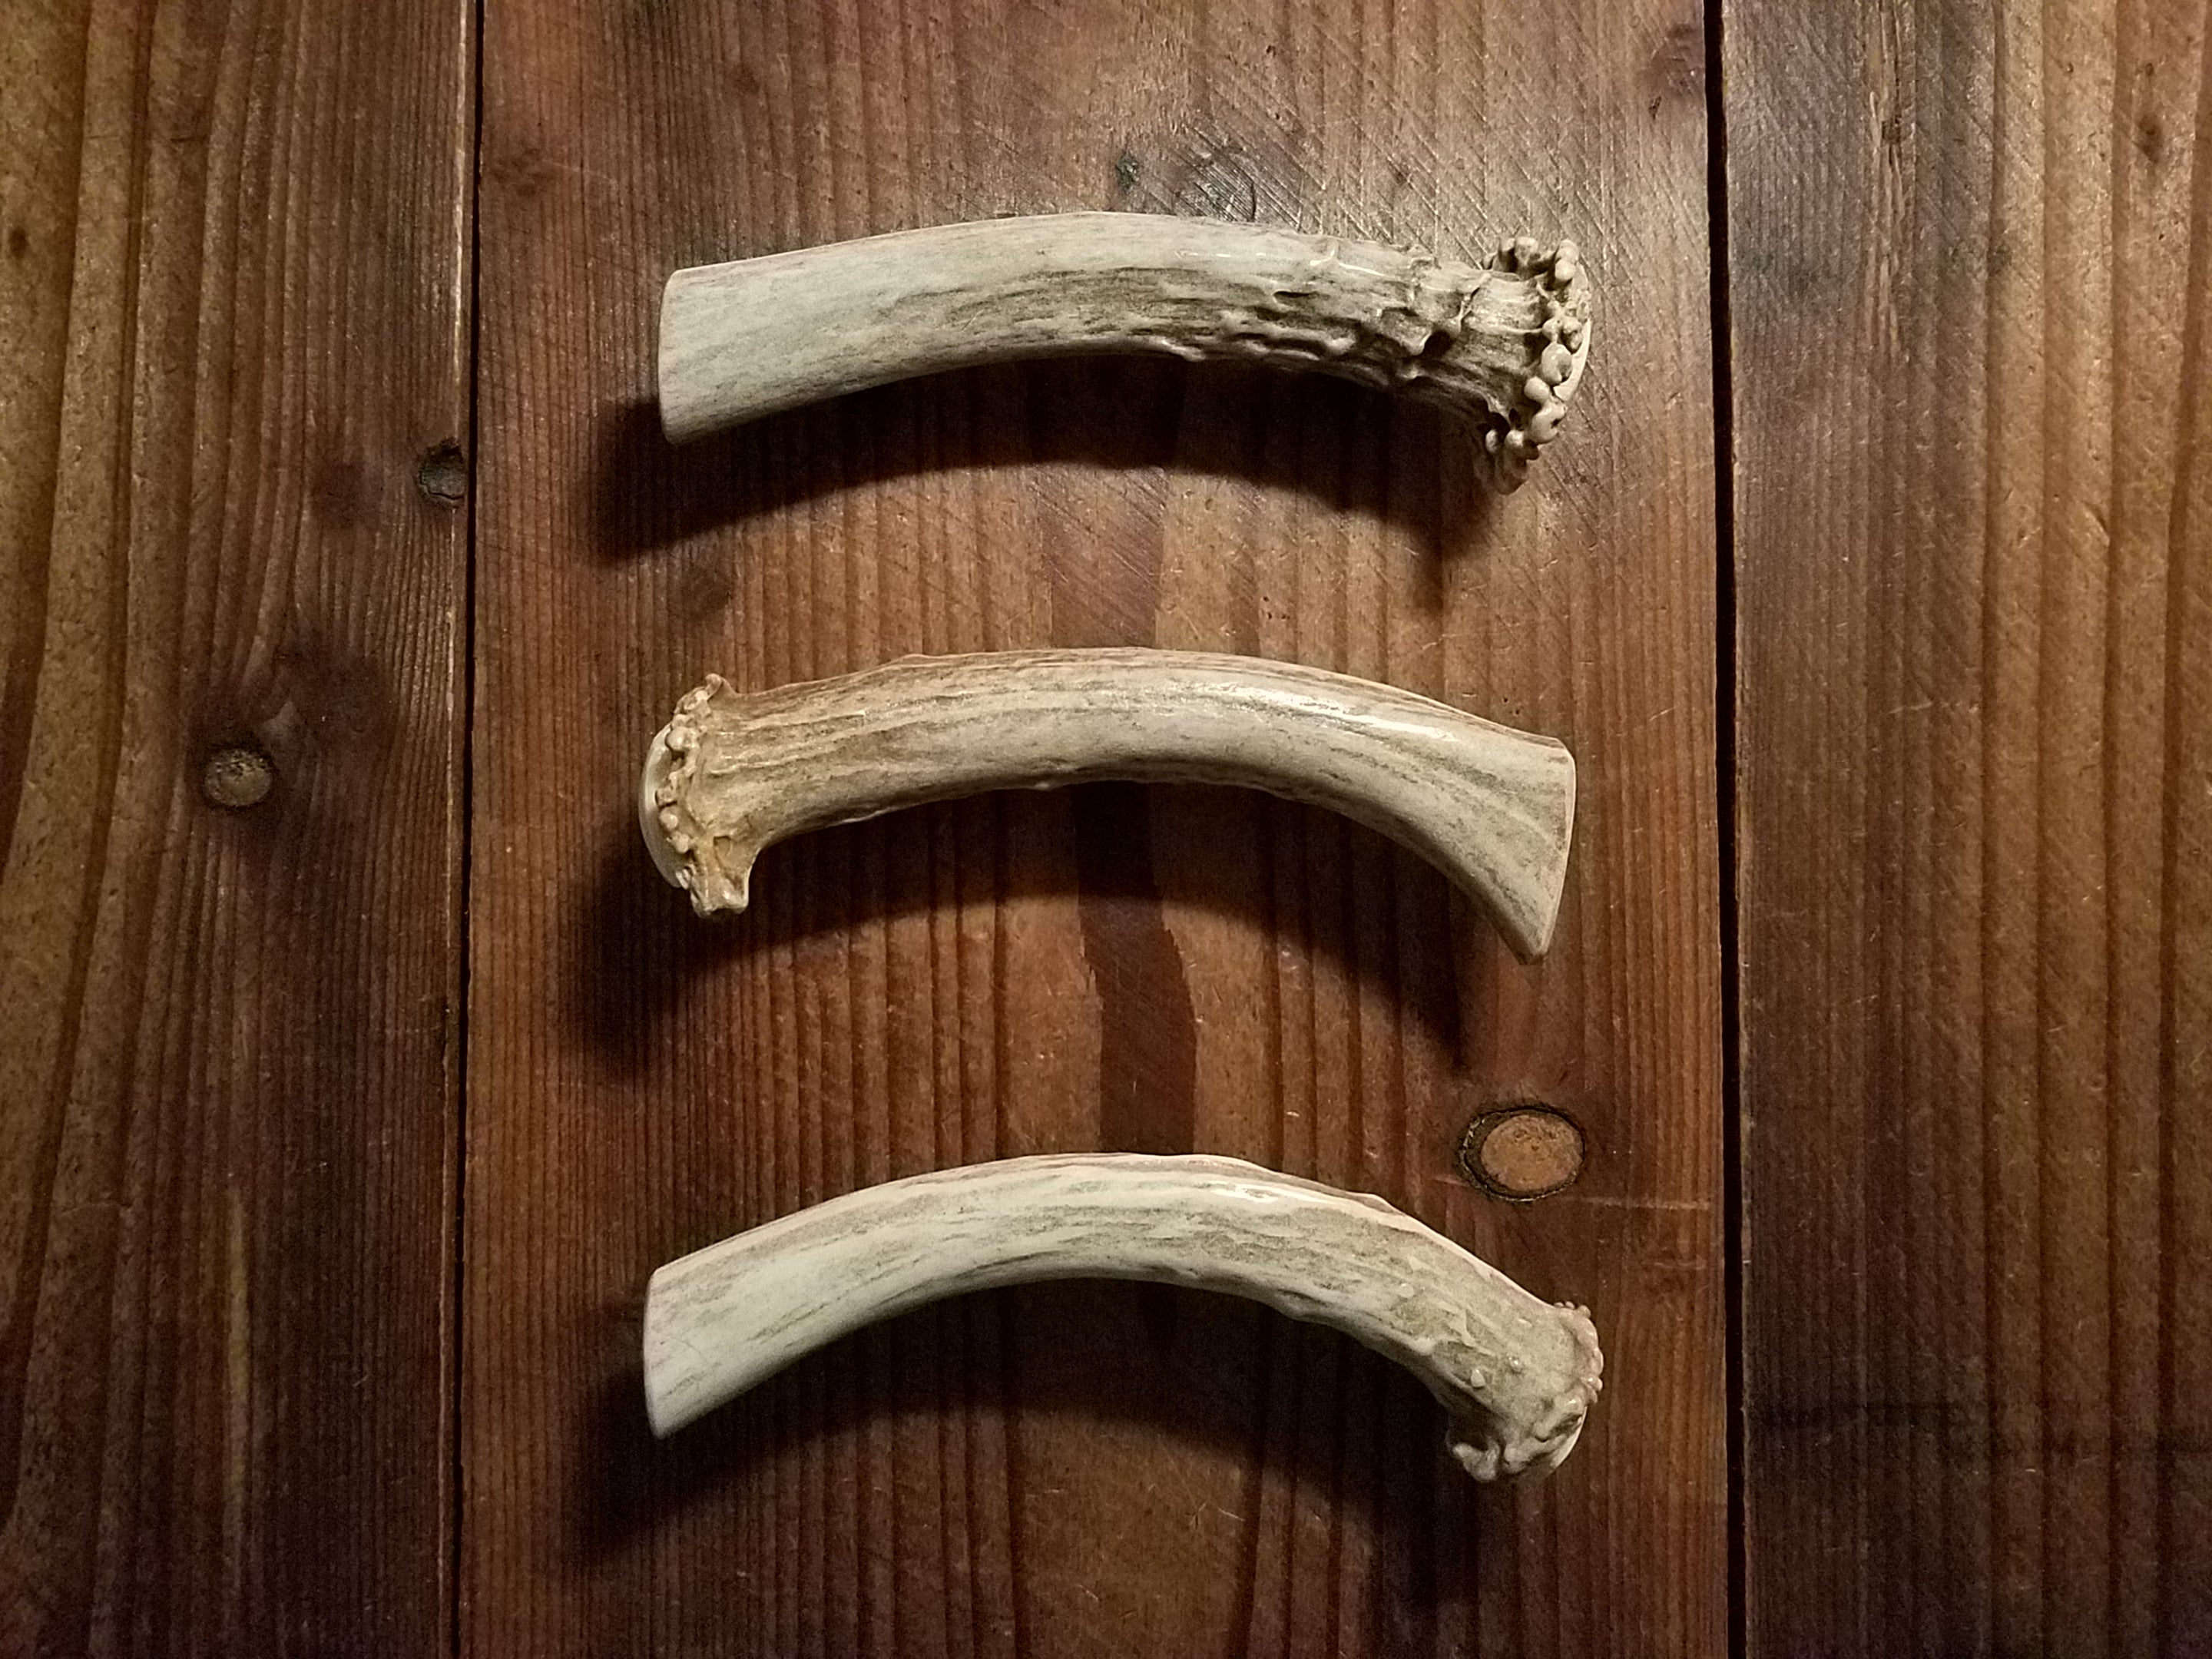 Shed Deer Crown and Beam Antler Handle Pull